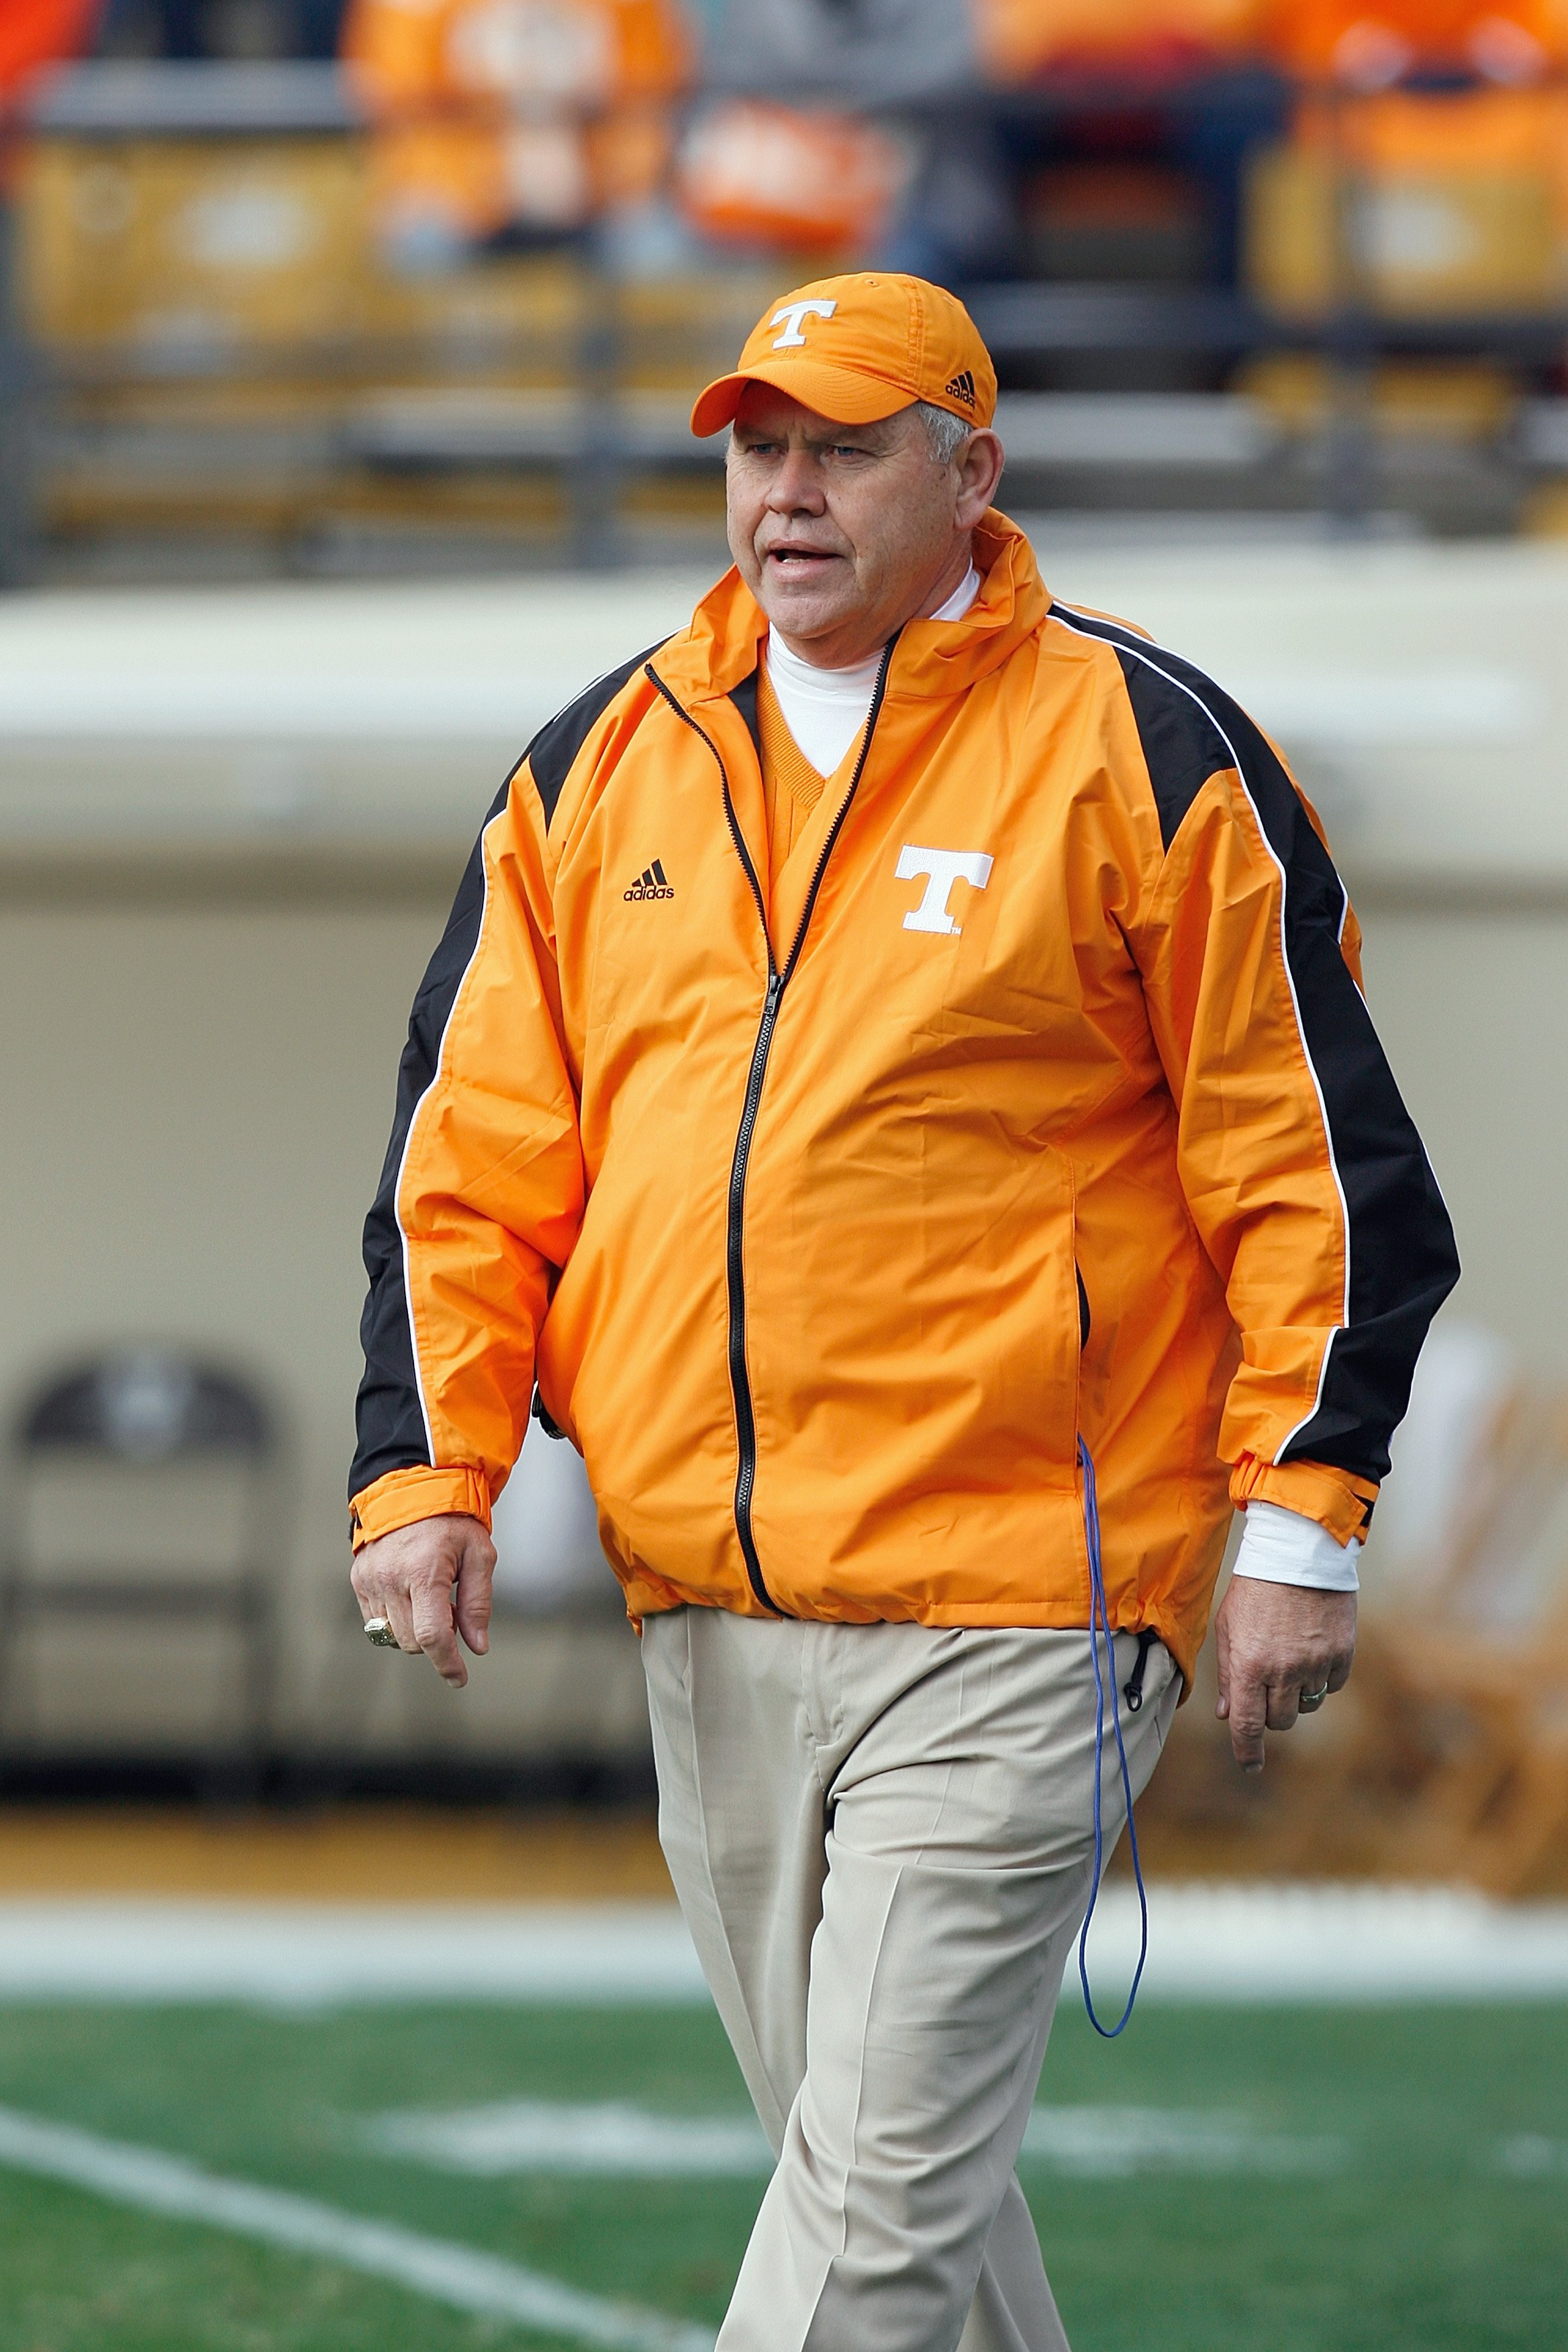 NASHVILLE, TN - NOVEMBER 22:  Head coach Phillip Fulmer of the Tennessee Volunteers walks on the field before the game against the Vanderbilt Commodores at Vanderbilt Stadium on November 22, 2008 in Nashville, North Carolina.  (Photo by Kevin C. Cox/Getty